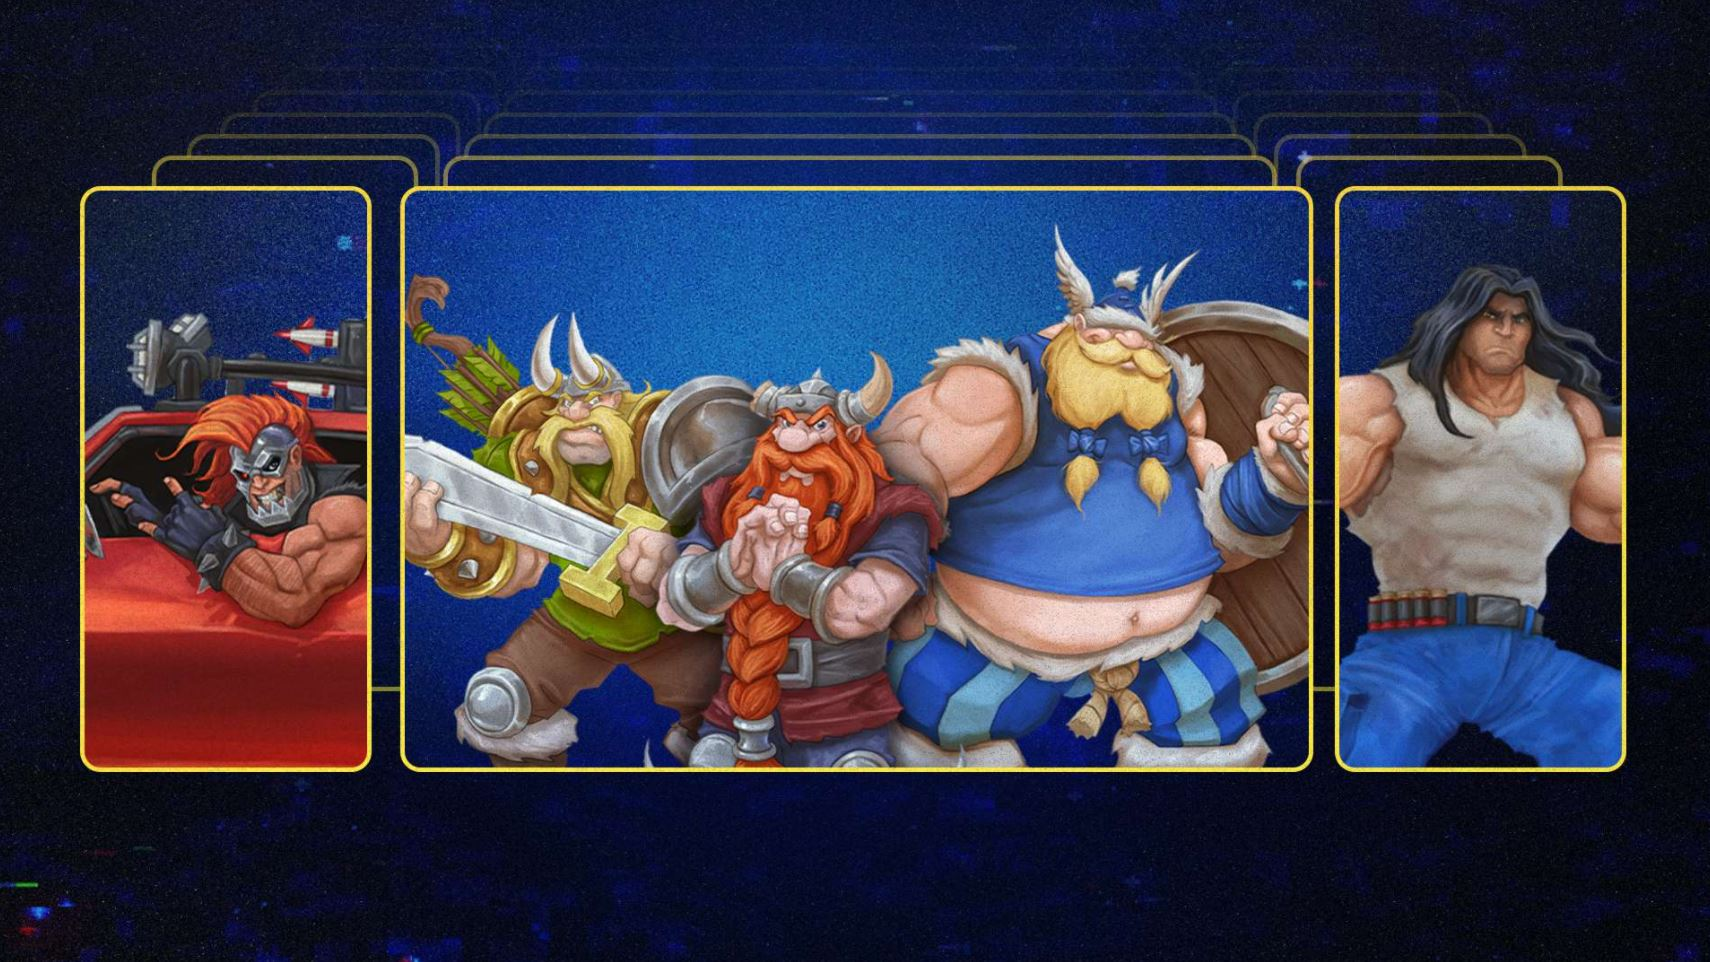 blizzard-arcade-collection-adds-lost-vikings-2-and-rpm-racing-for-all-owners-free-of-charge